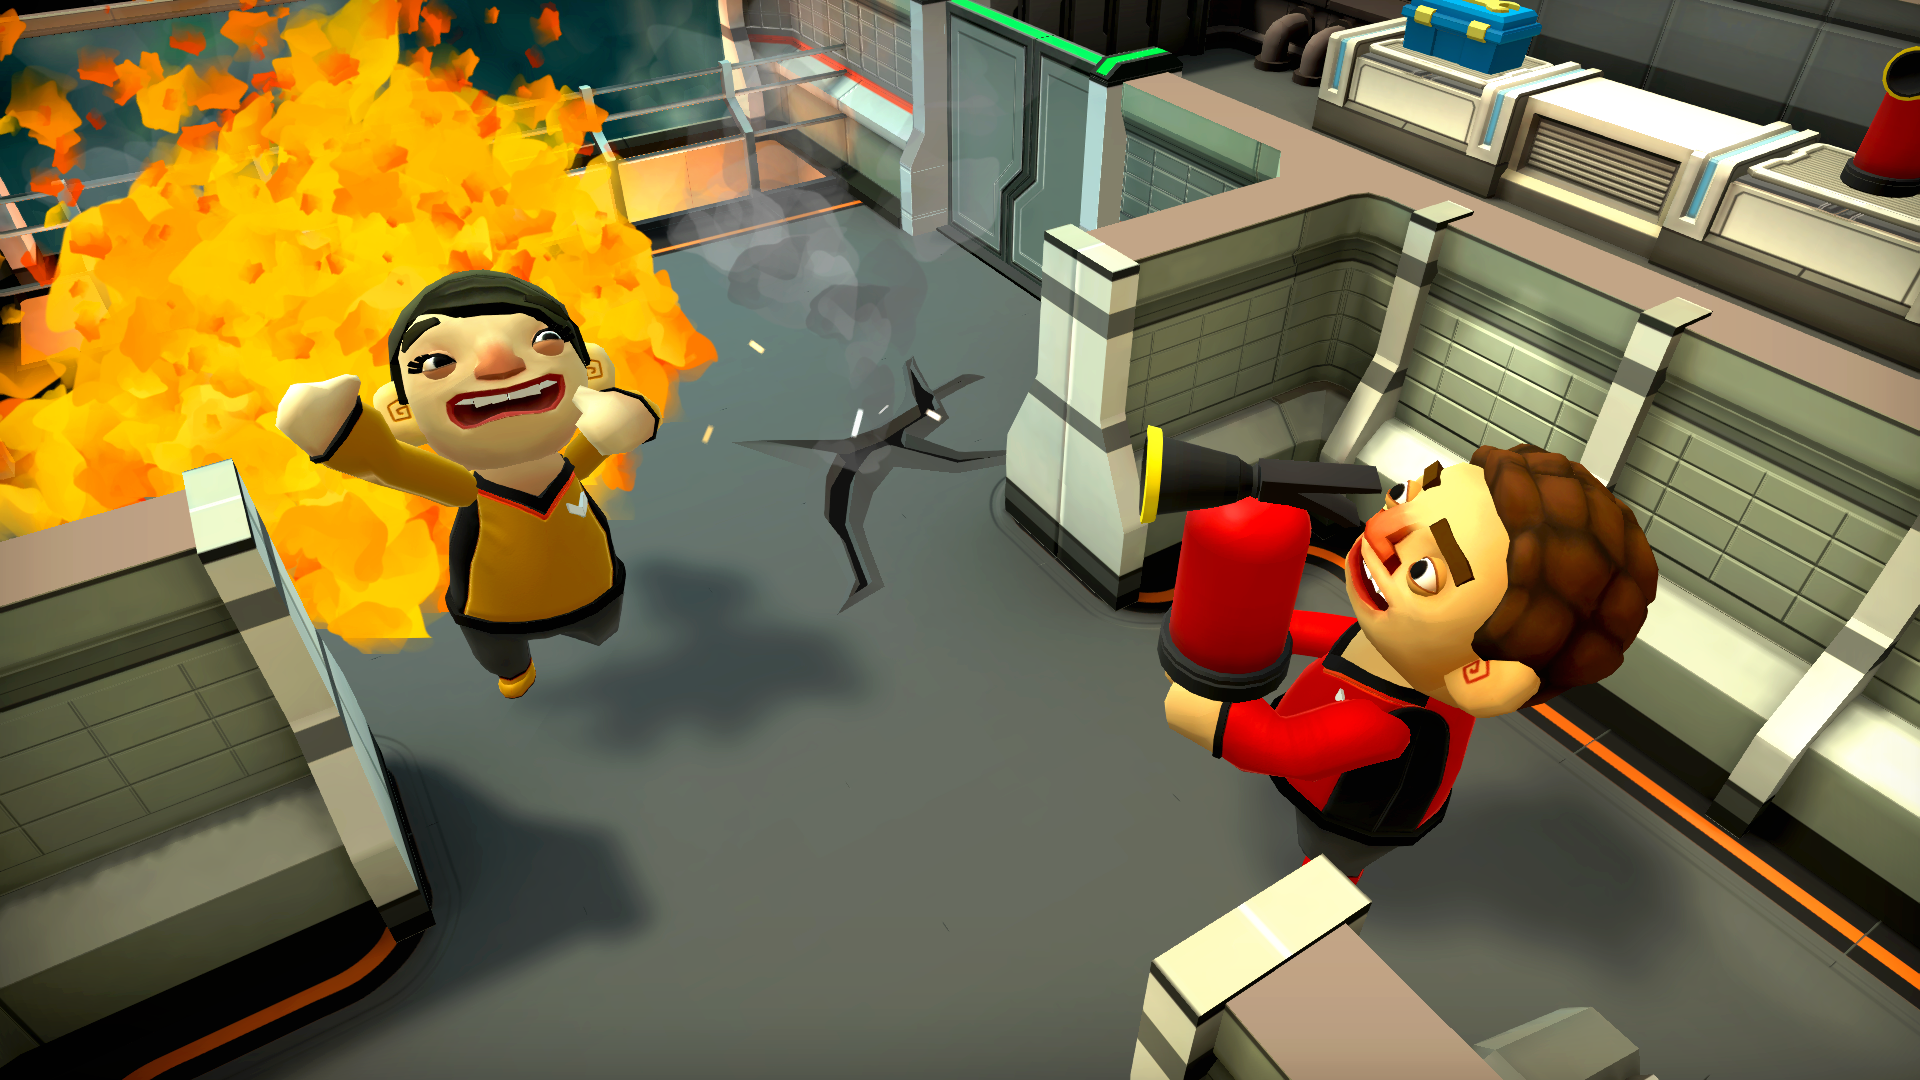 Close up shot of player putting out their fellow Catastronaut, who is on fire